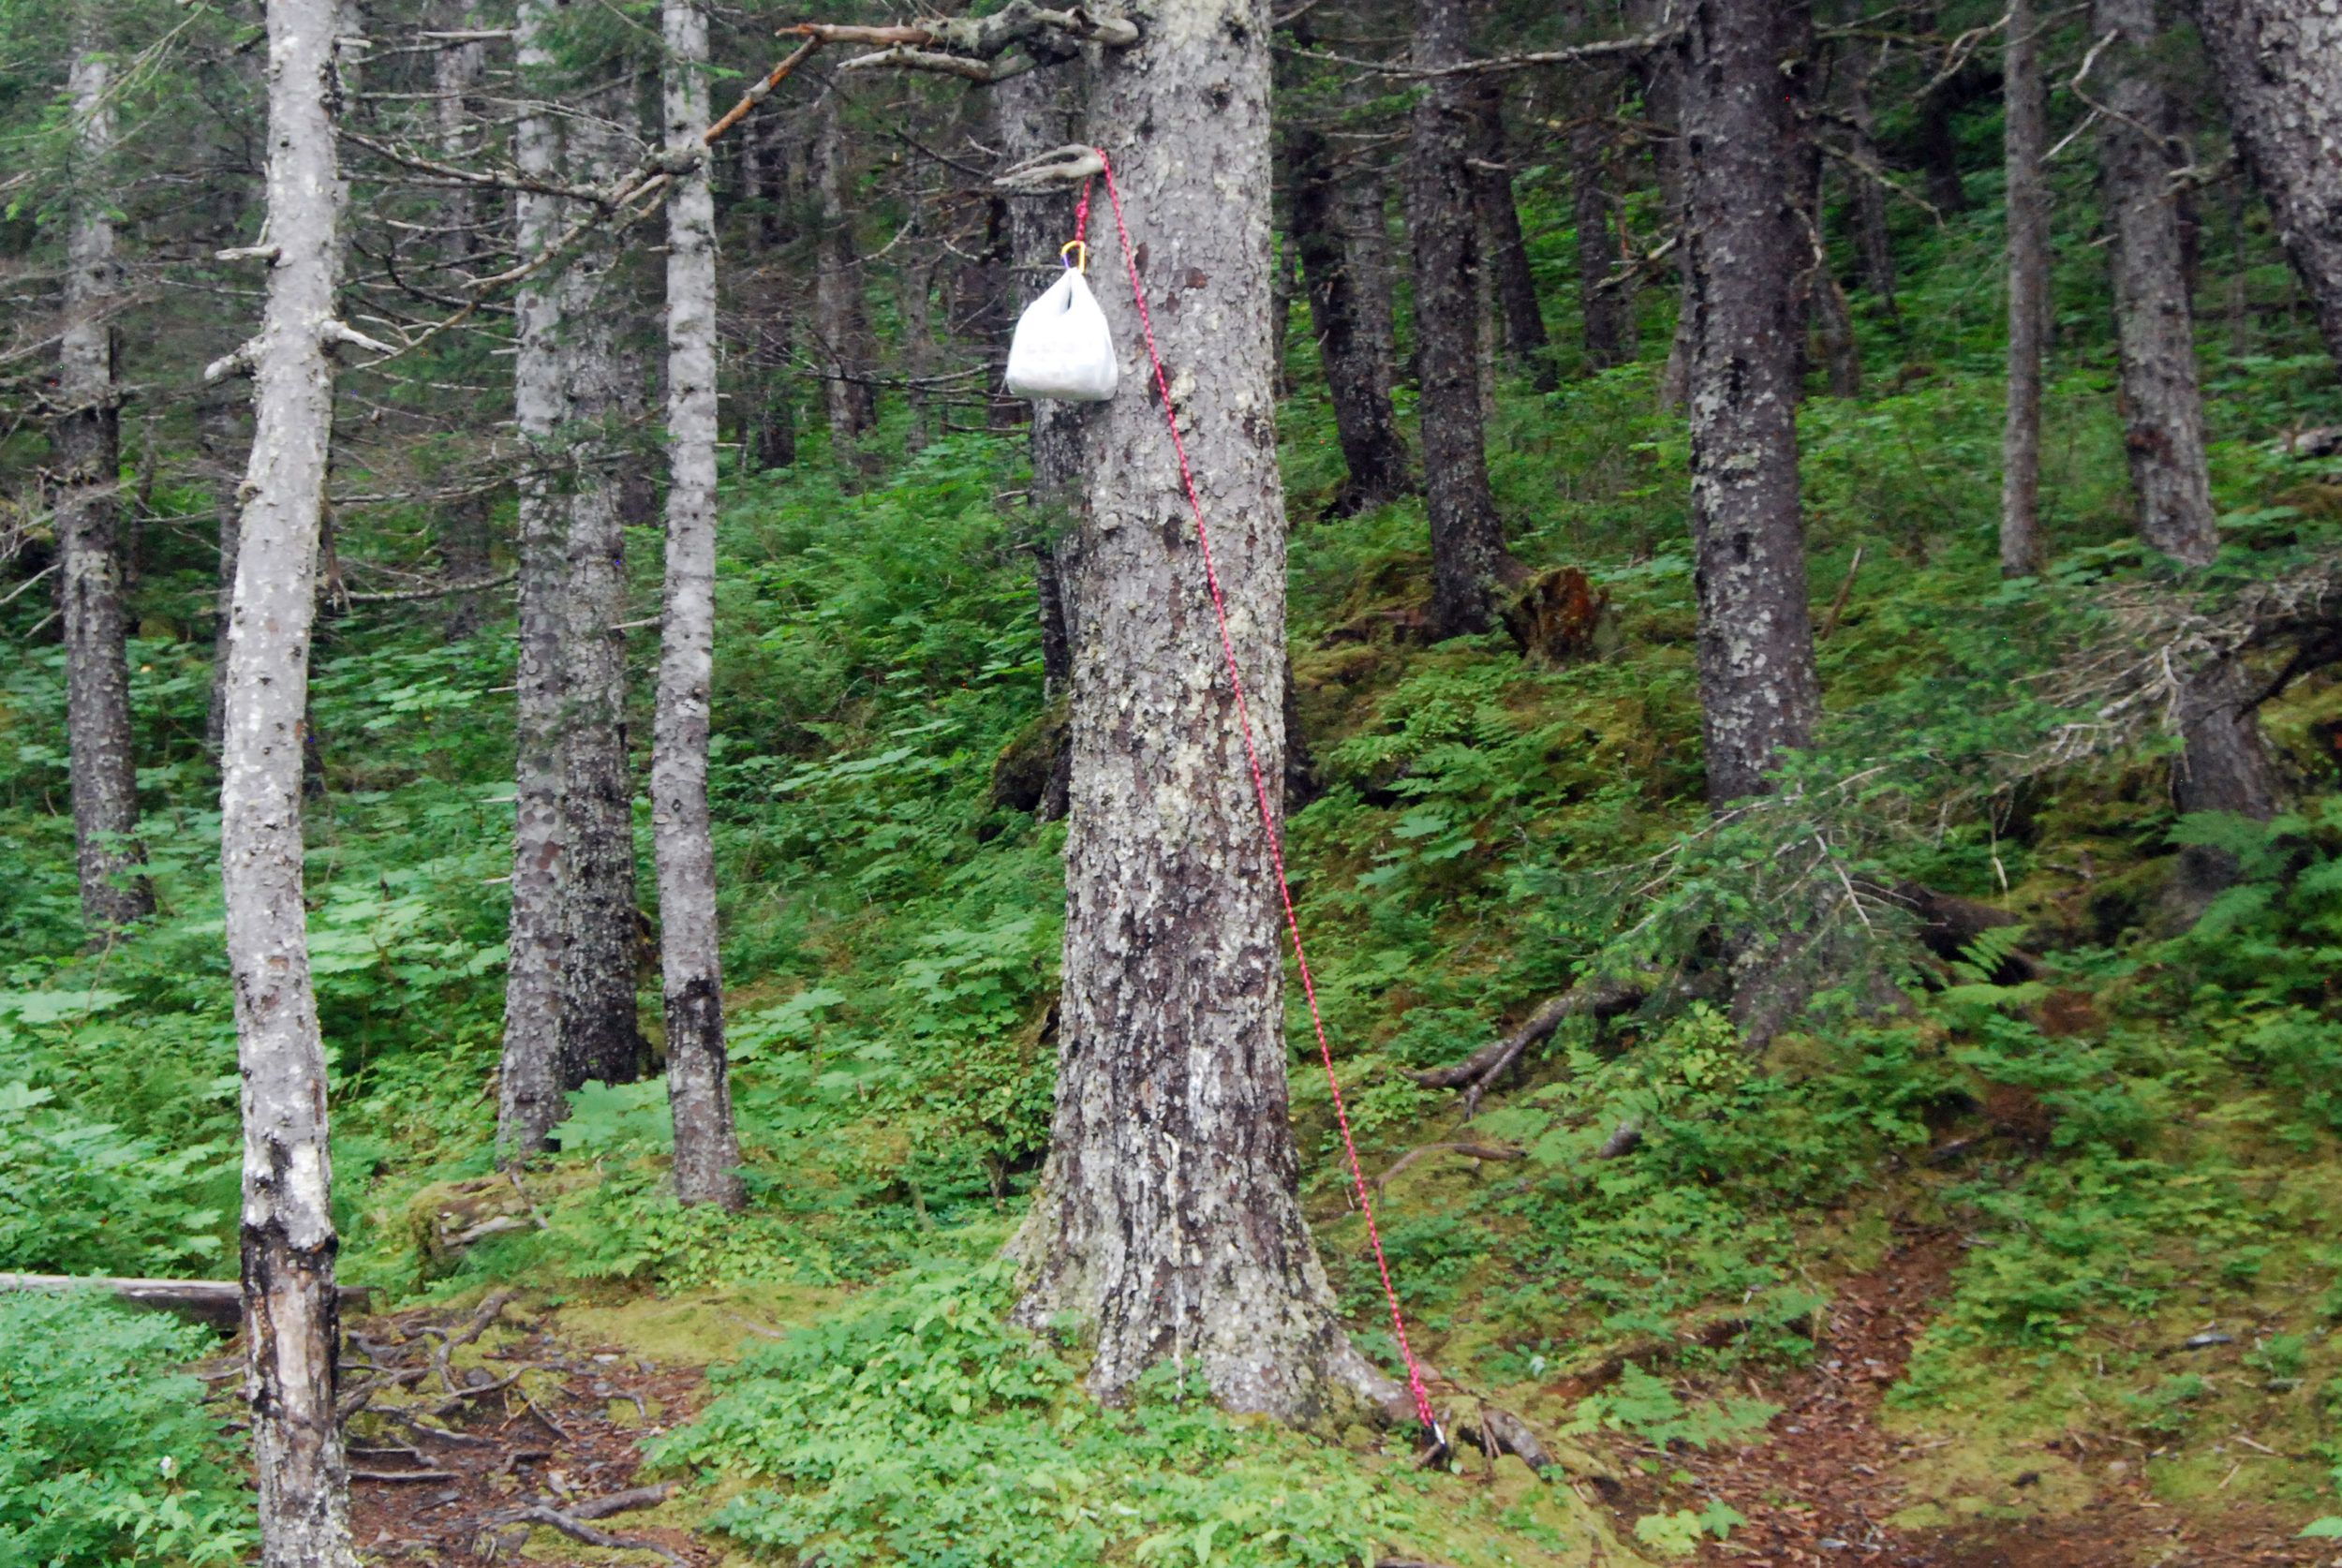 The entire Alaska is bear country. I haven't seen any, but that doesn't mean they are not around. I am particularly proud of my hanging of the food.